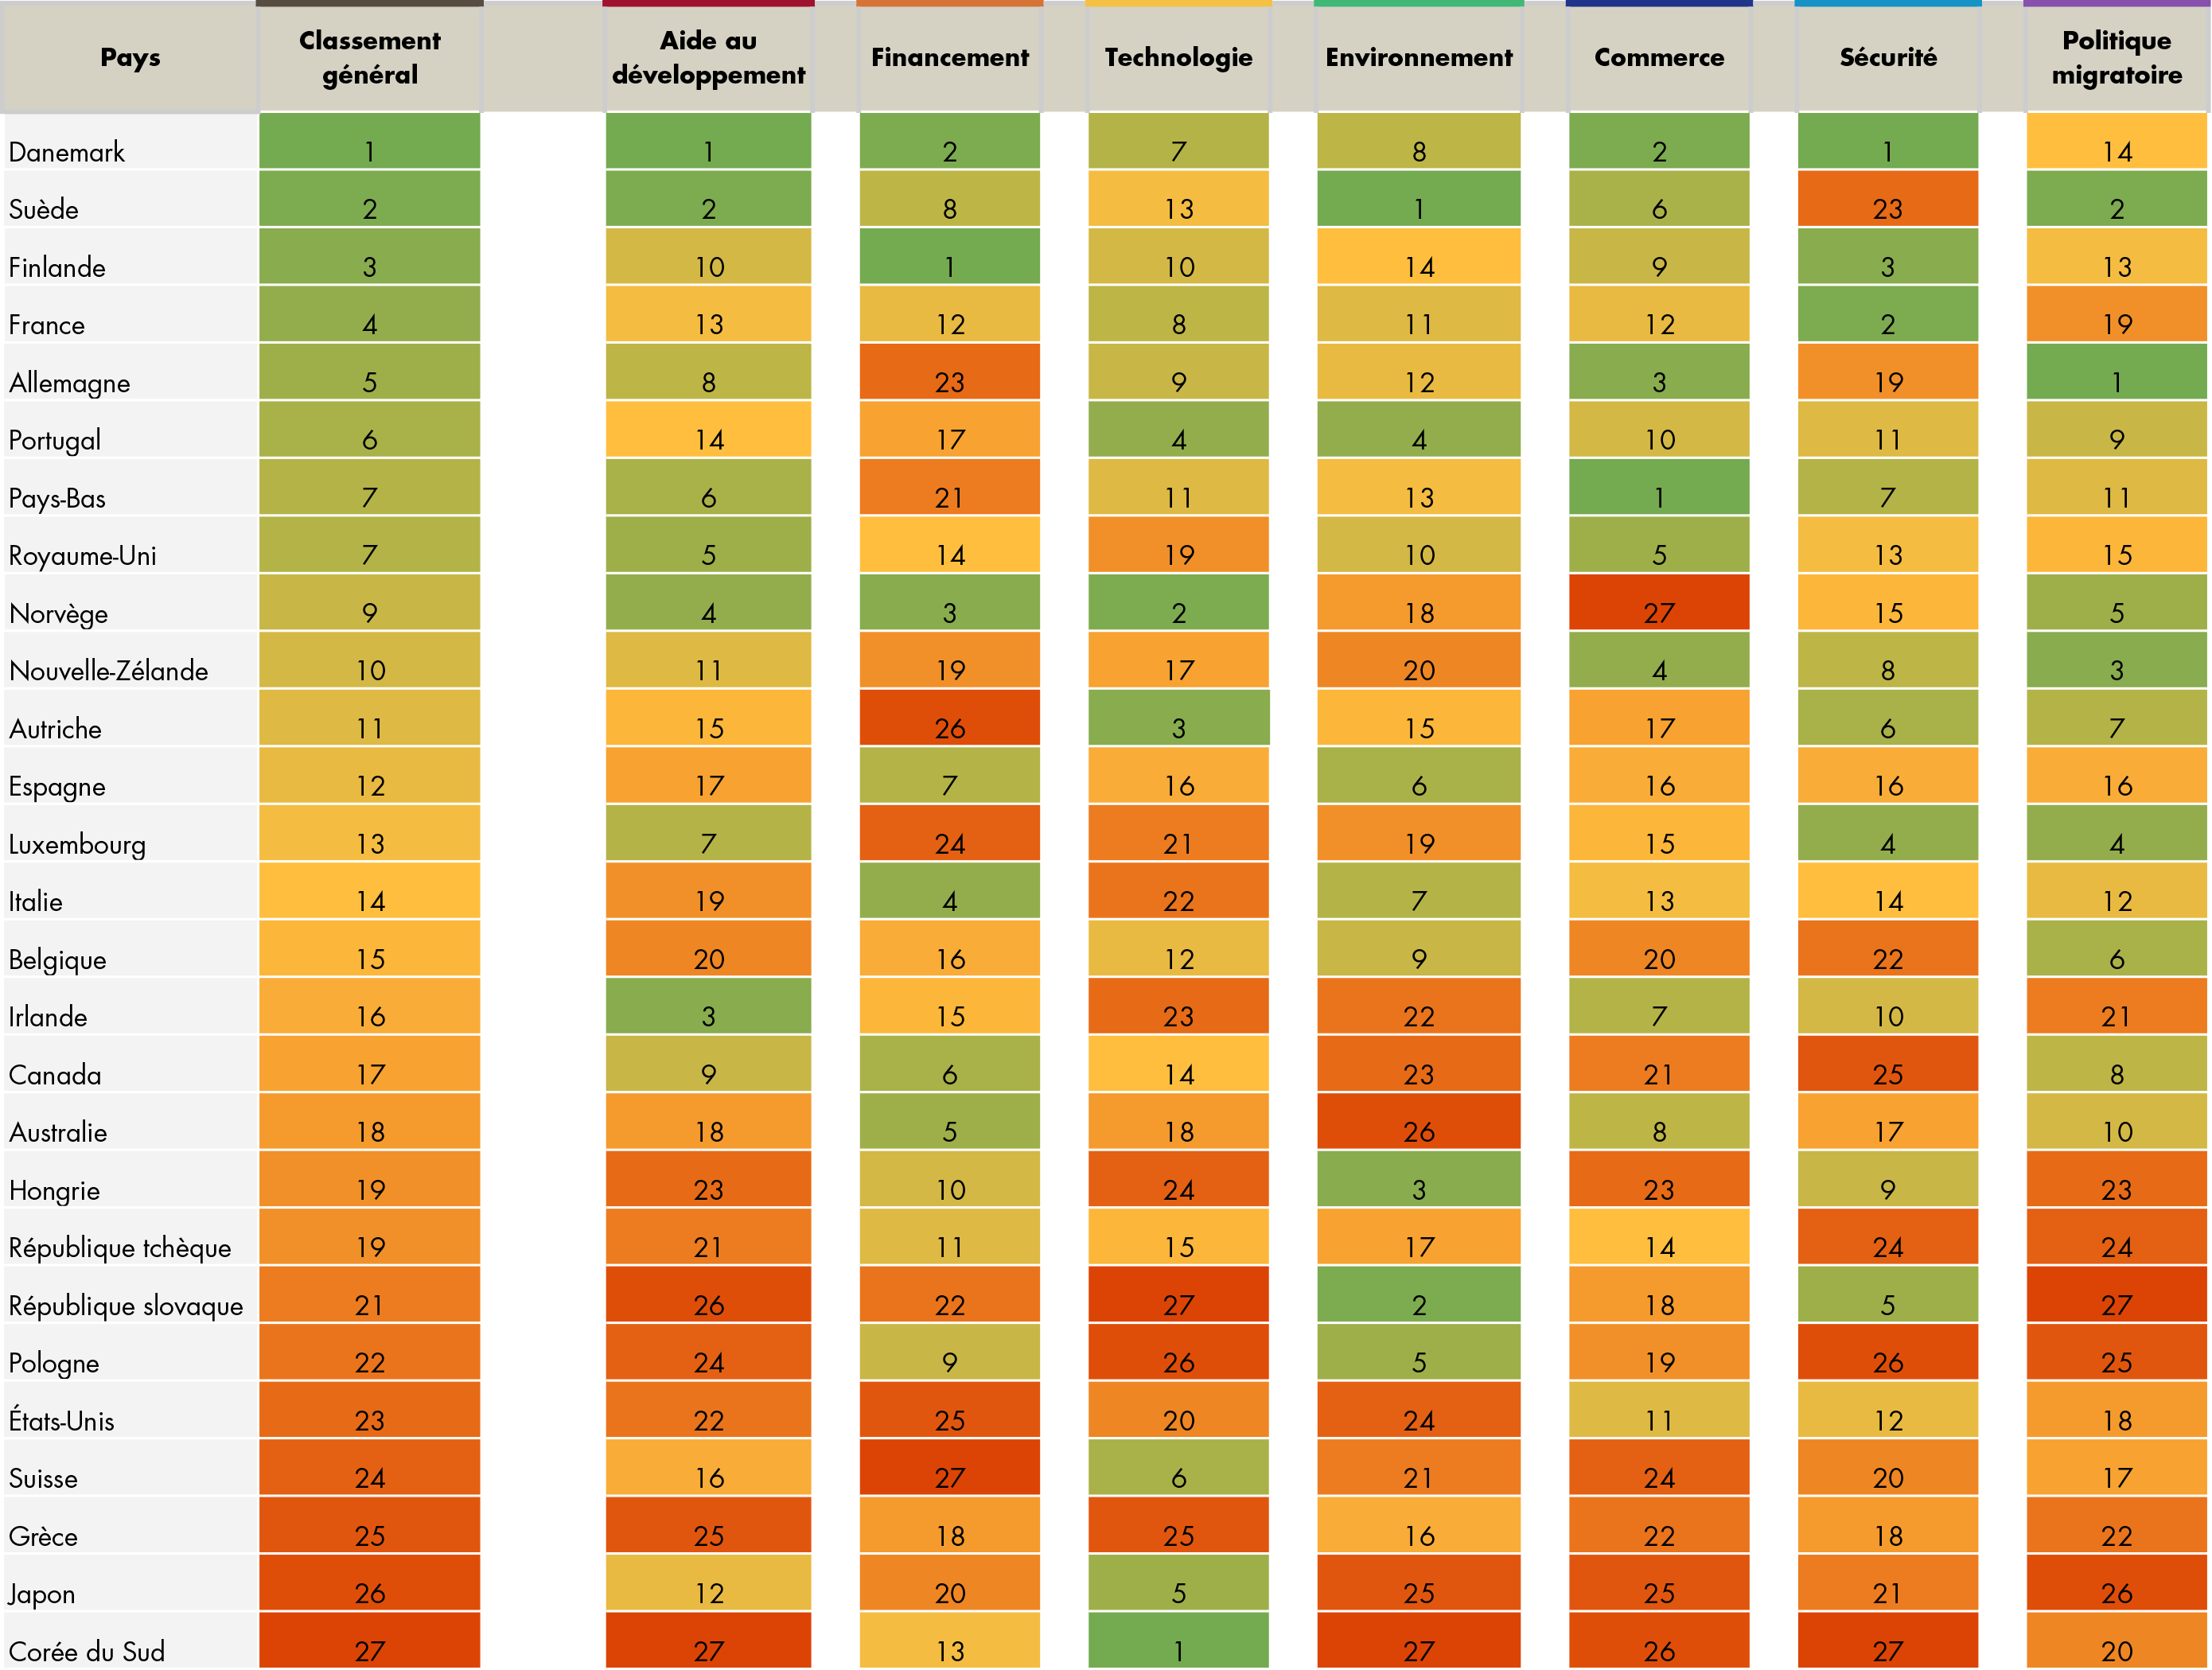 Table ranking all 27 CDI countries across all 7 categories, in French